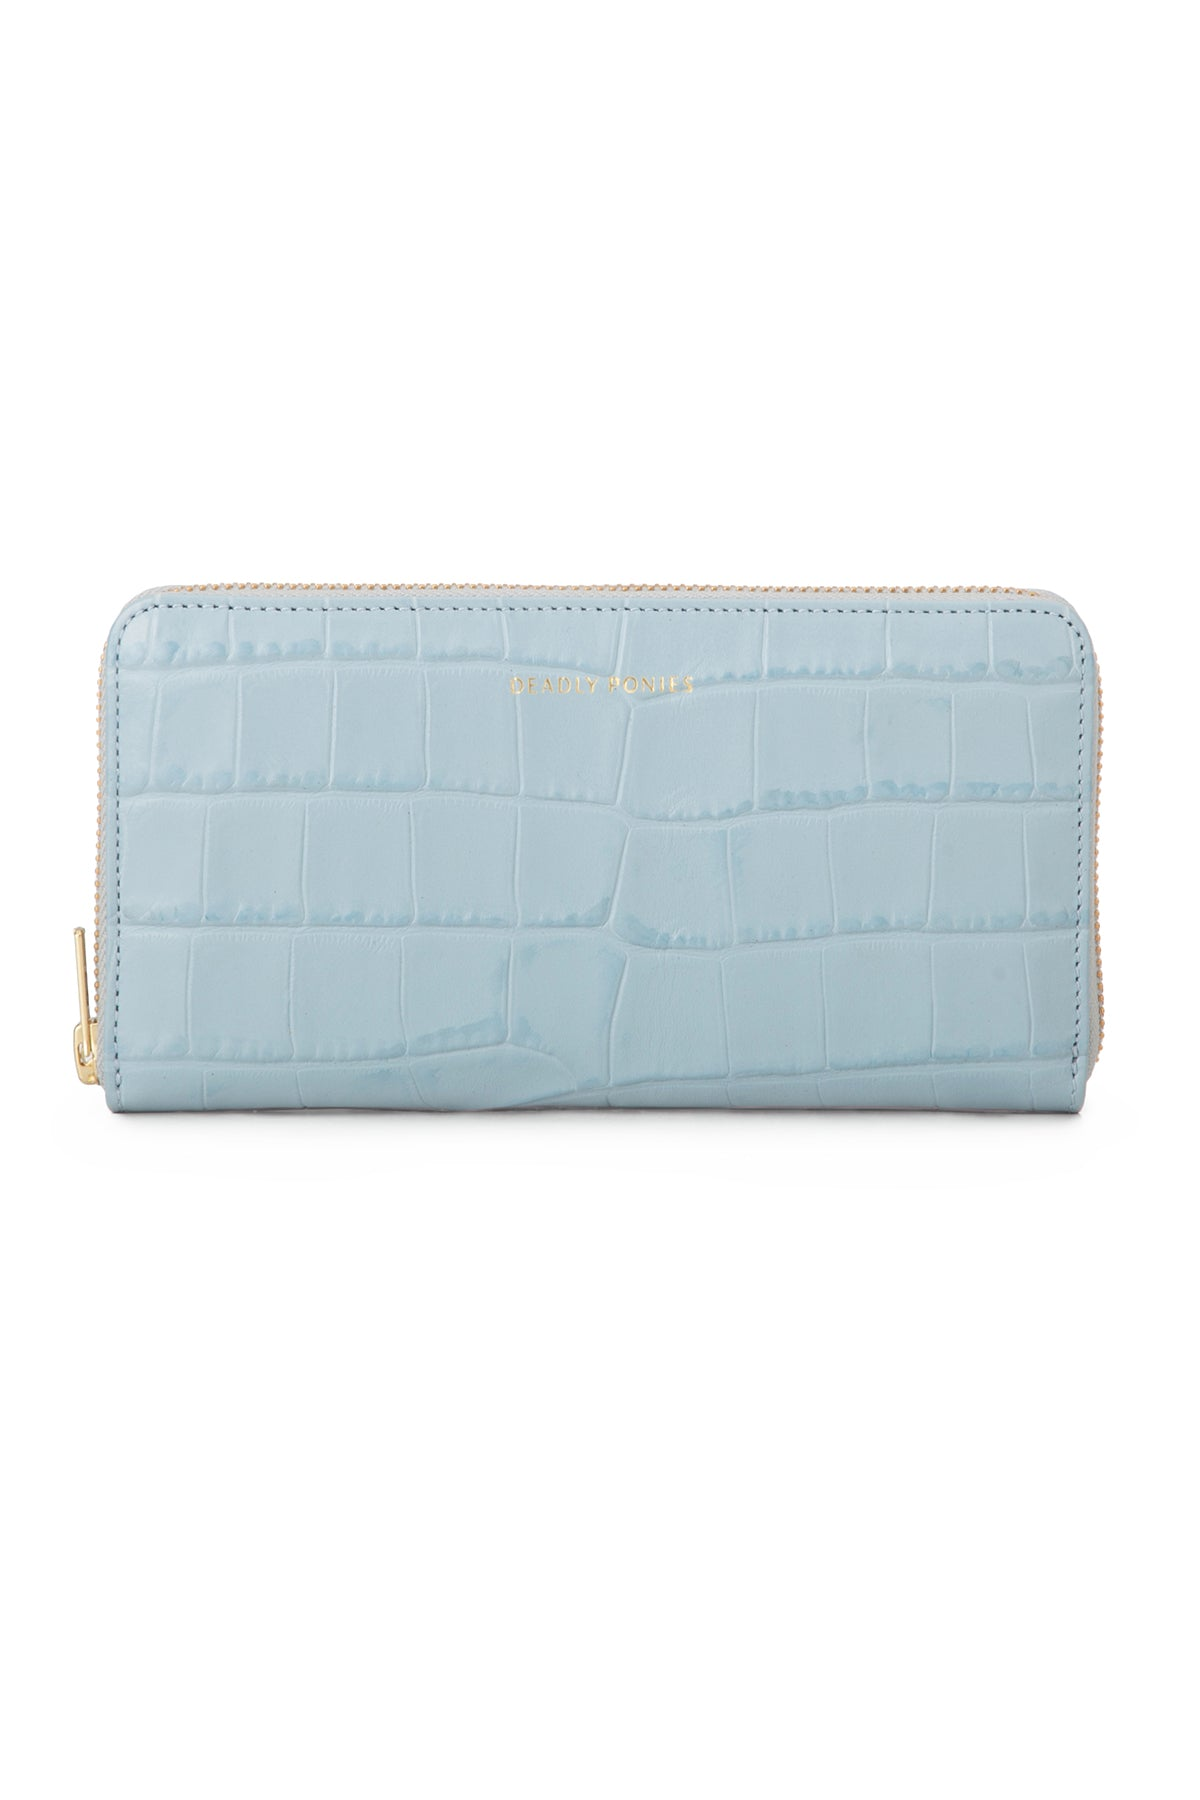 Deadly Ponies Mr Wallet Croc // Periwinkle